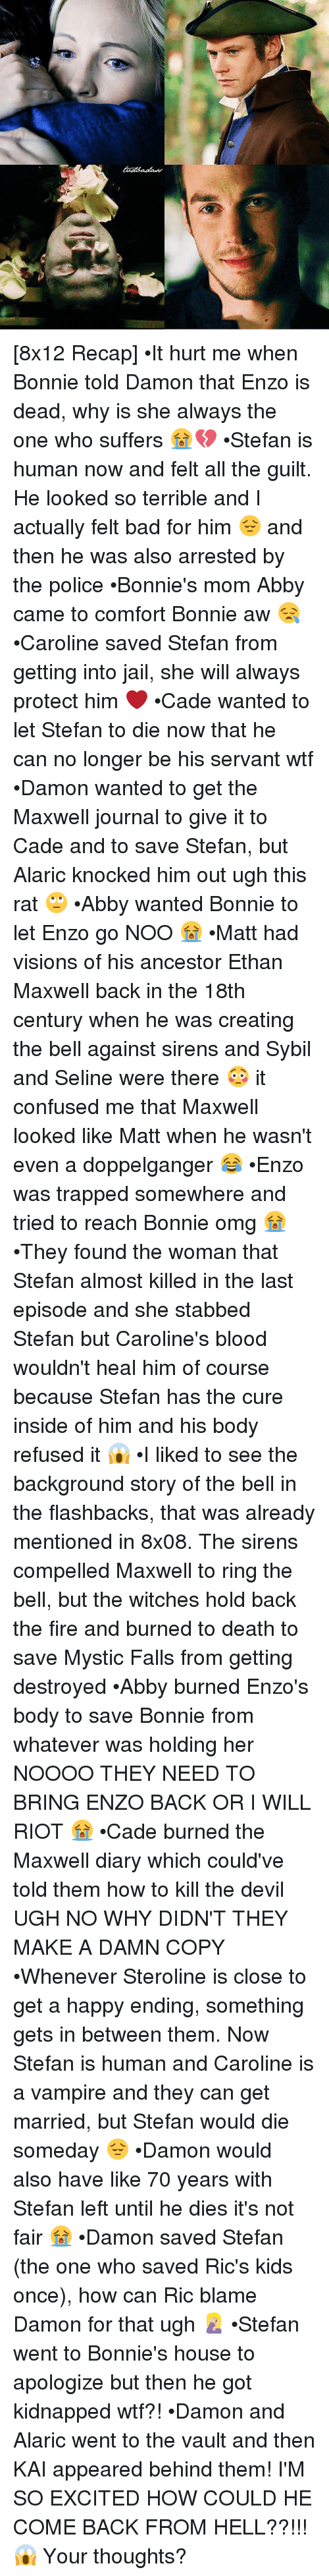 Terribler: [8x12 Recap] •It hurt me when Bonnie told Damon that Enzo is dead, why is she always the one who suffers 😭💔 •Stefan is human now and felt all the guilt. He looked so terrible and I actually felt bad for him 😔 and then he was also arrested by the police •Bonnie's mom Abby came to comfort Bonnie aw 😪 •Caroline saved Stefan from getting into jail, she will always protect him ❤ •Cade wanted to let Stefan to die now that he can no longer be his servant wtf •Damon wanted to get the Maxwell journal to give it to Cade and to save Stefan, but Alaric knocked him out ugh this rat 🙄 •Abby wanted Bonnie to let Enzo go NOO 😭 •Matt had visions of his ancestor Ethan Maxwell back in the 18th century when he was creating the bell against sirens and Sybil and Seline were there 😳 it confused me that Maxwell looked like Matt when he wasn't even a doppelganger 😂 •Enzo was trapped somewhere and tried to reach Bonnie omg 😭 •They found the woman that Stefan almost killed in the last episode and she stabbed Stefan but Caroline's blood wouldn't heal him of course because Stefan has the cure inside of him and his body refused it 😱 •I liked to see the background story of the bell in the flashbacks, that was already mentioned in 8x08. The sirens compelled Maxwell to ring the bell, but the witches hold back the fire and burned to death to save Mystic Falls from getting destroyed •Abby burned Enzo's body to save Bonnie from whatever was holding her NOOOO THEY NEED TO BRING ENZO BACK OR I WILL RIOT 😭 •Cade burned the Maxwell diary which could've told them how to kill the devil UGH NO WHY DIDN'T THEY MAKE A DAMN COPY •Whenever Steroline is close to get a happy ending, something gets in between them. Now Stefan is human and Caroline is a vampire and they can get married, but Stefan would die someday 😔 •Damon would also have like 70 years with Stefan left until he dies it's not fair 😭 •Damon saved Stefan (the one who saved Ric's kids once), how can Ric blame Damon for that ugh 🤦🏼‍♀️ •Stefan went to Bonnie's house to apologize but then he got kidnapped wtf?! •Damon and Alaric went to the vault and then KAI appeared behind them! I'M SO EXCITED HOW COULD HE COME BACK FROM HELL??!!! 😱 Your thoughts?